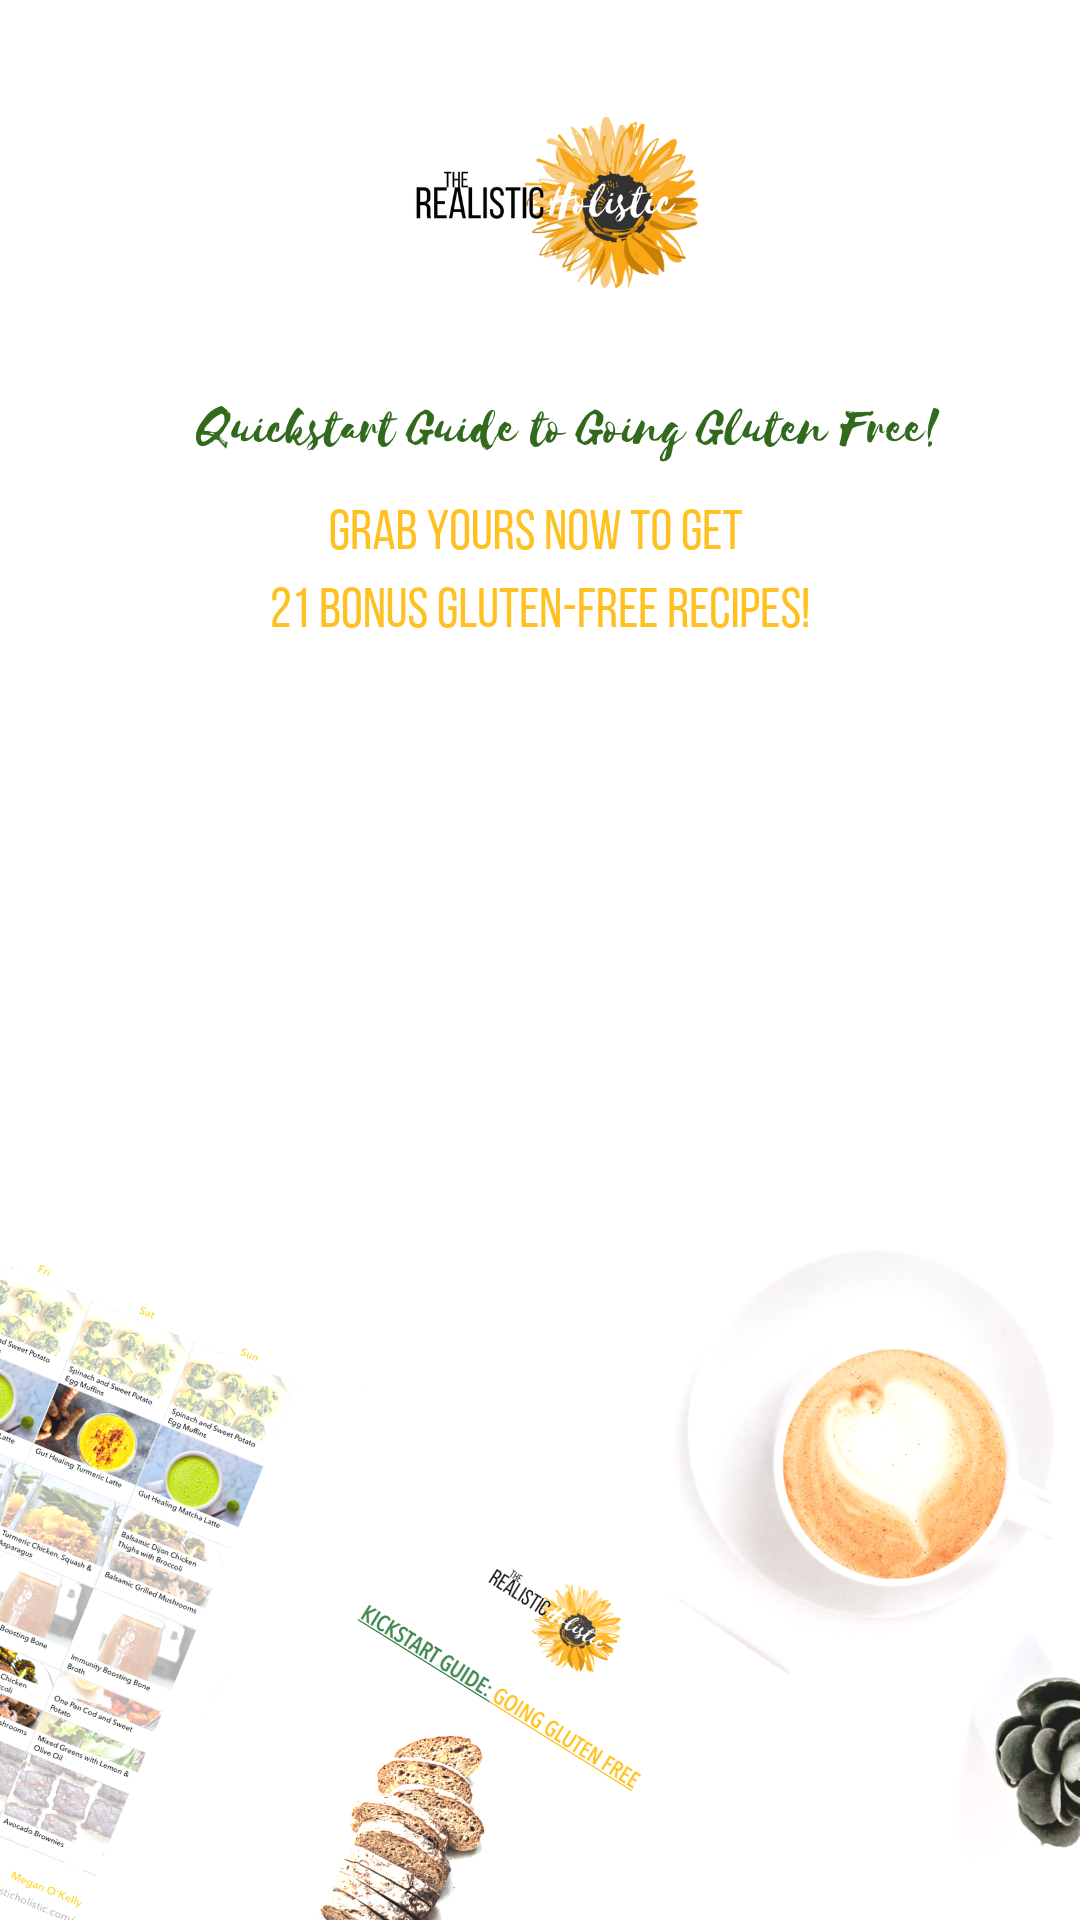 Quickstart Guide to Going Gluten-Free